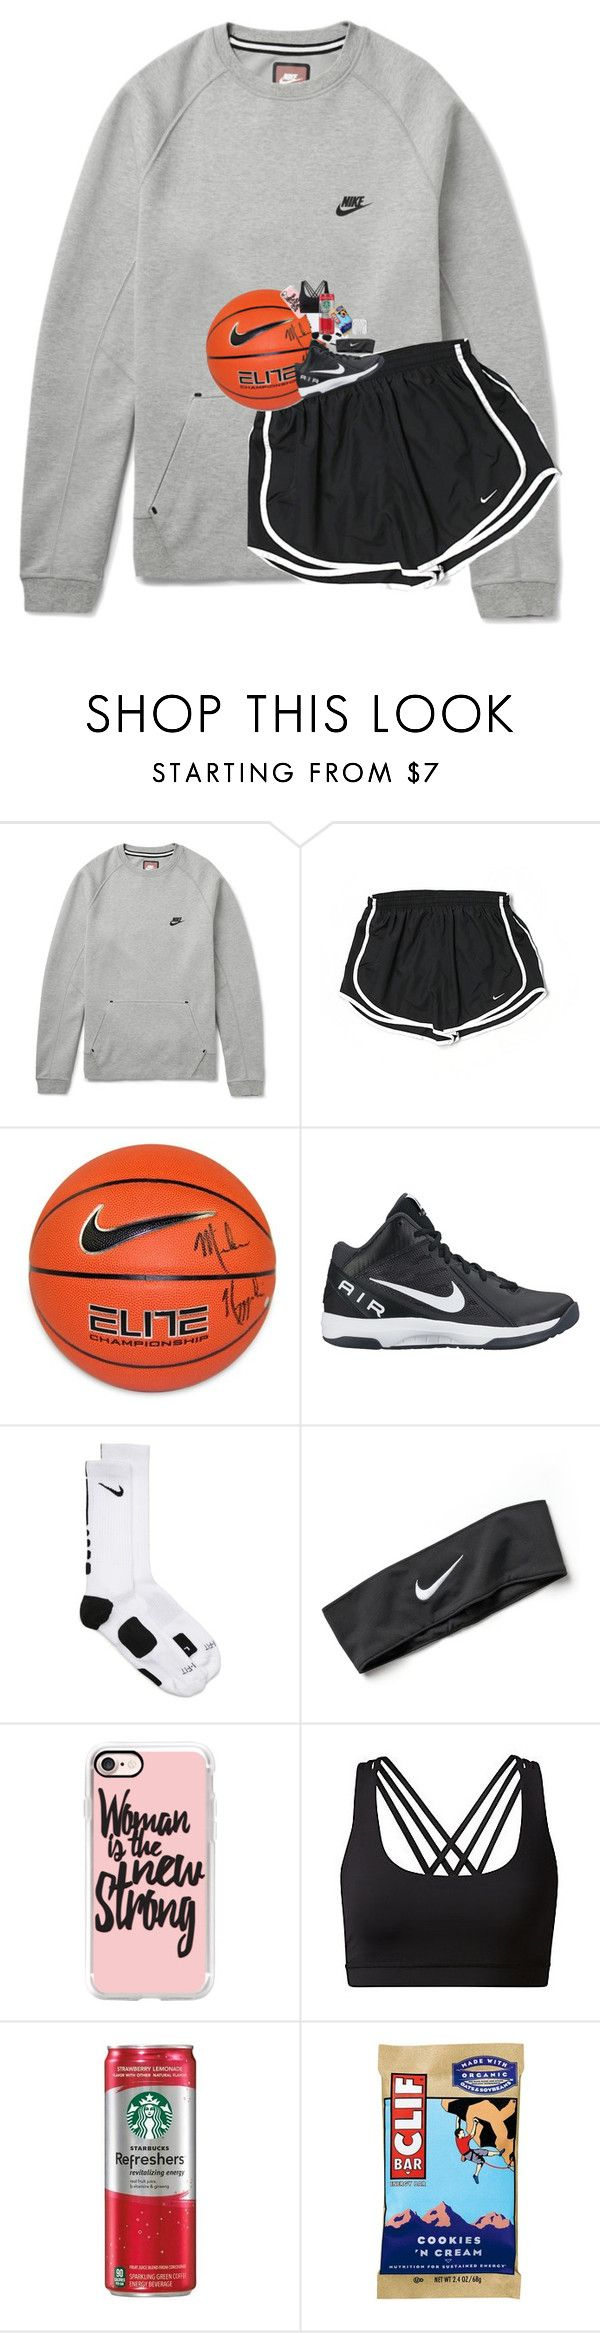 Basketball Game Tomorrow By Lindsaygreys Liked On Polyvore Featuring Nike Steiner Sports And Case Gaming Clothes Basketball Clothes Basketball Game Outfit